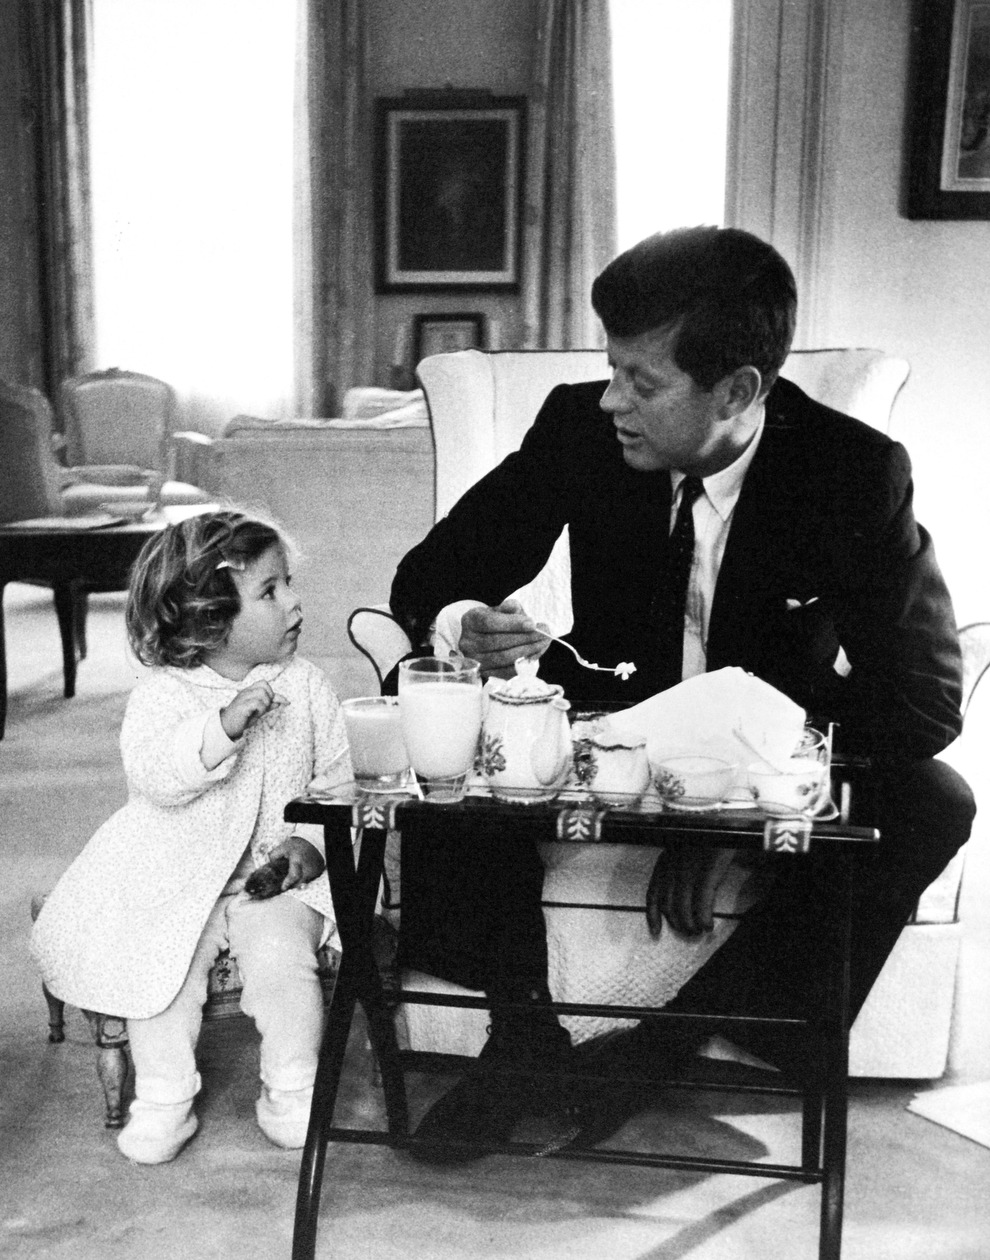 President Kennedy has a breakfast conference with his daughter, Caroline, in the residence area of the White House in 1961.